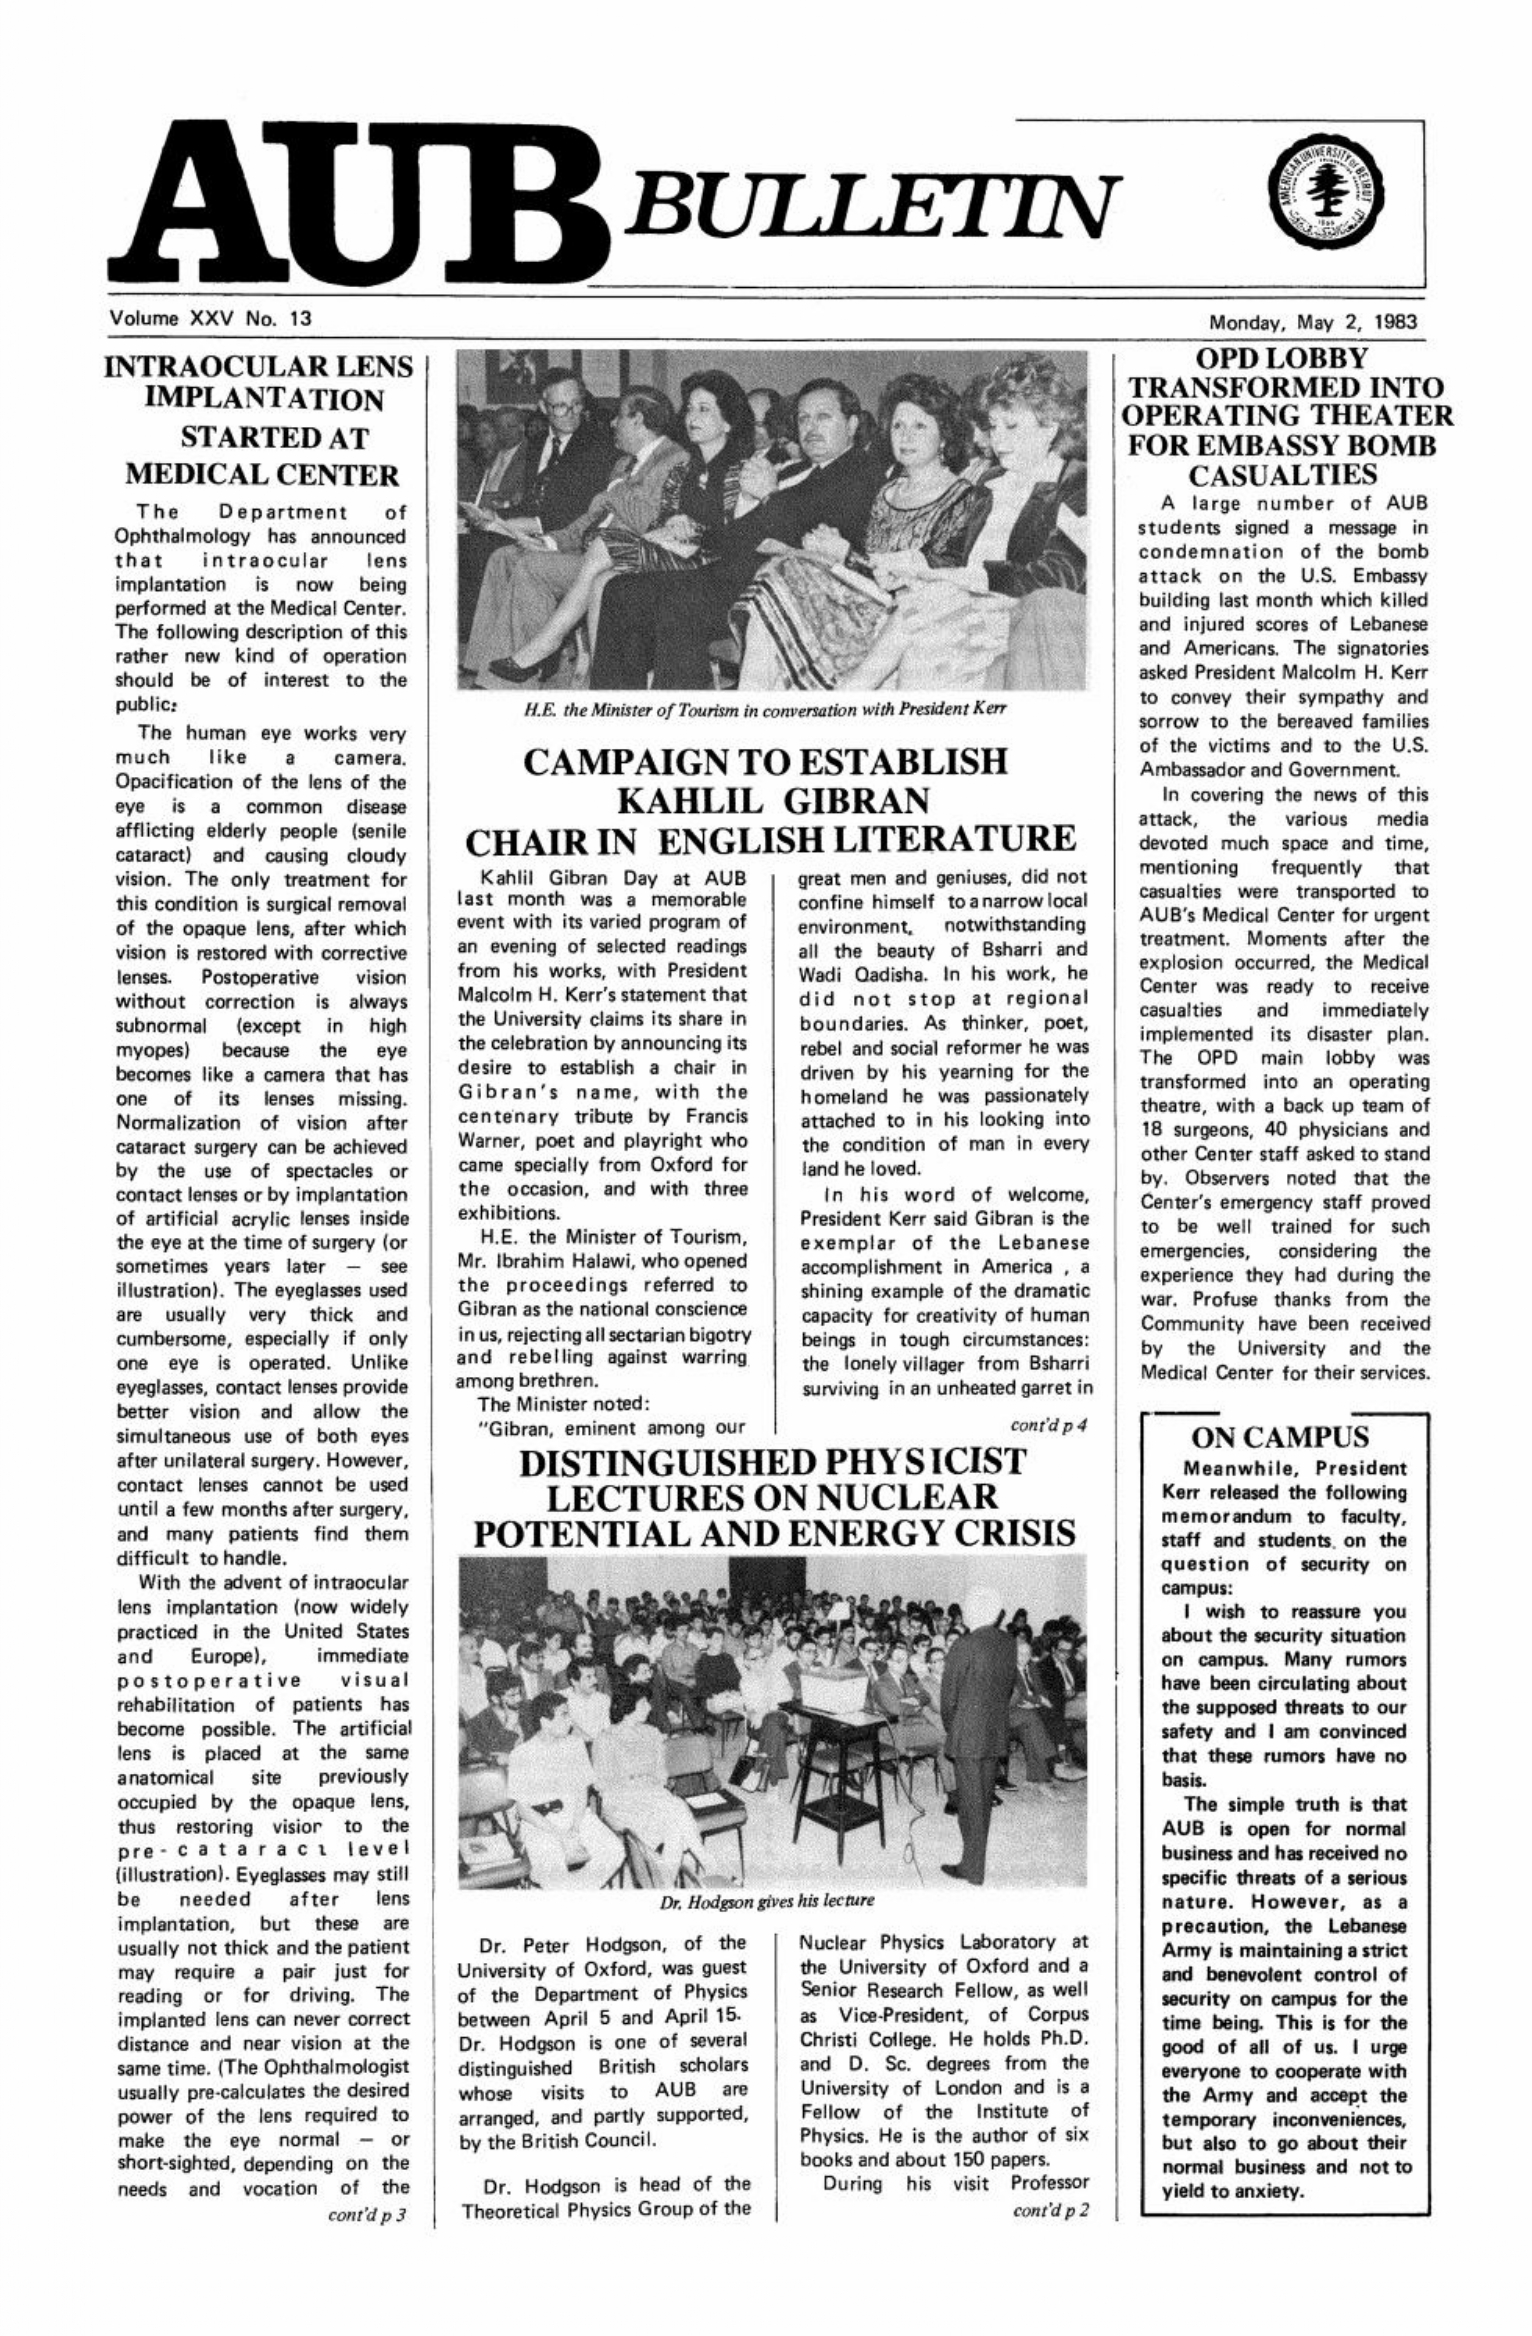 Campaign to Establish Kahlil Gibran Chair in Literature - Kahlil Gibran Day, American University of Beirut Bulletin, 25, 9, Mar 13, 1983, pp. 1,3.